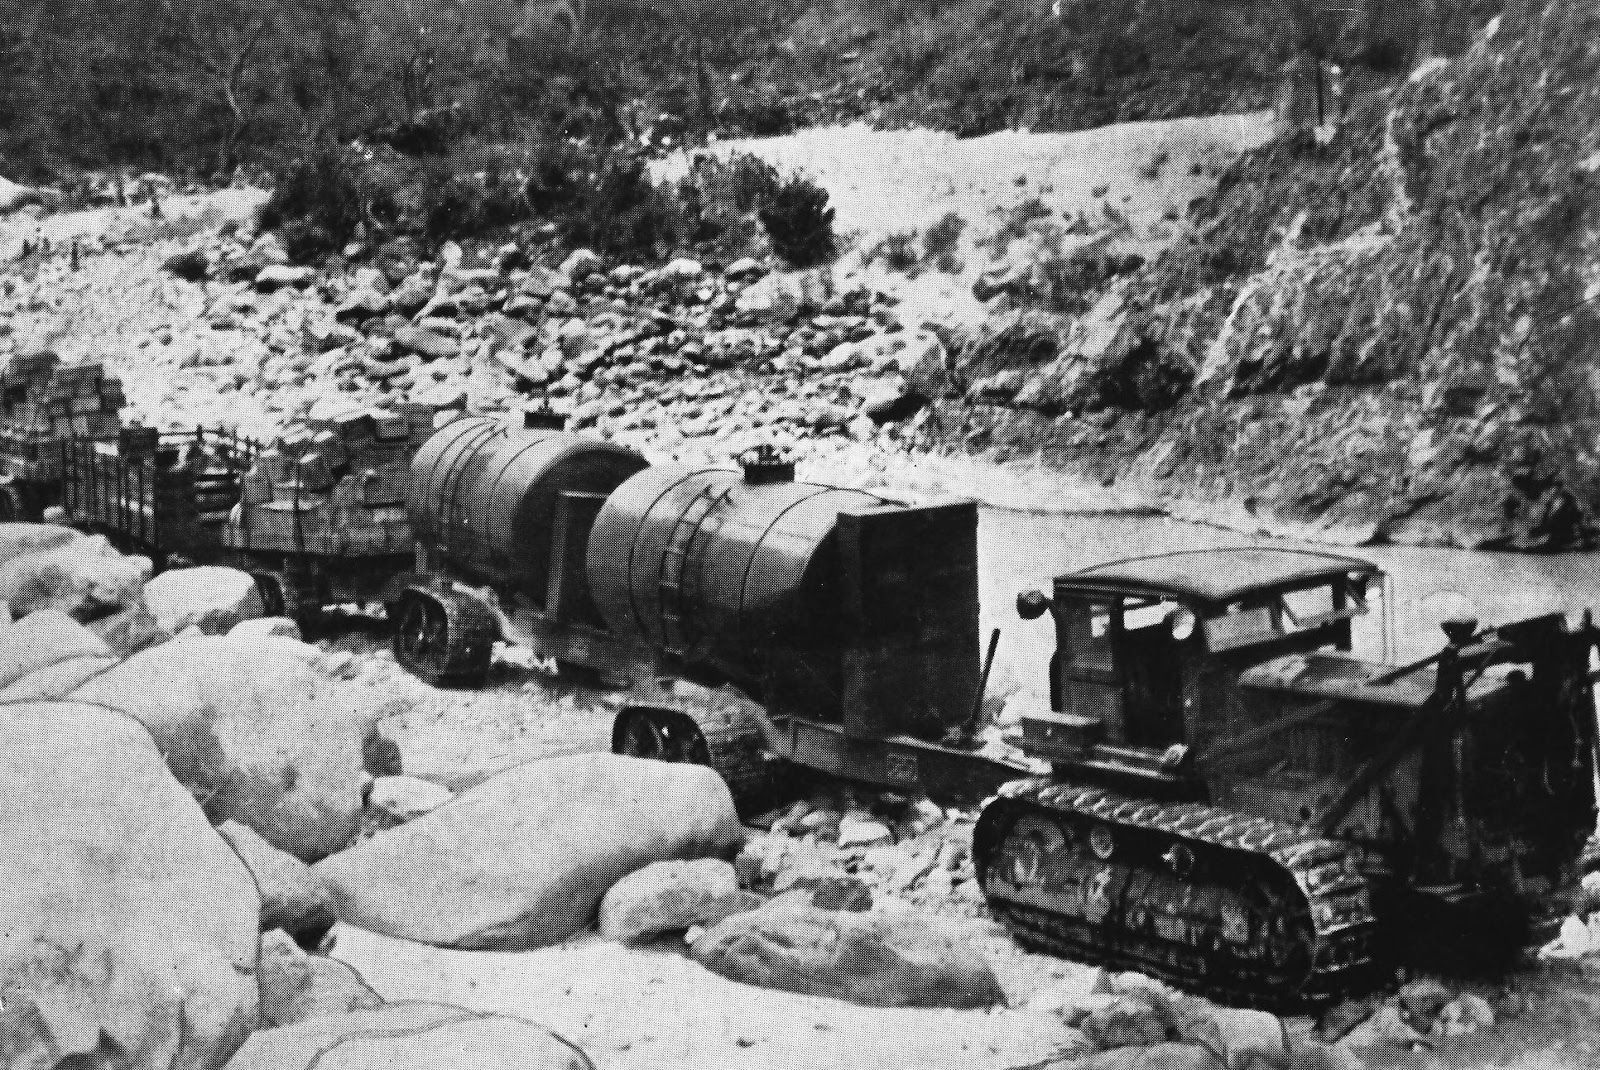 1939 version of a Caterpiller dozer with a cab and some kind of rack on the front.  The dozer is hauling several Athey trailer wagons carrying supplies to a mining camp far from roads or railroads.